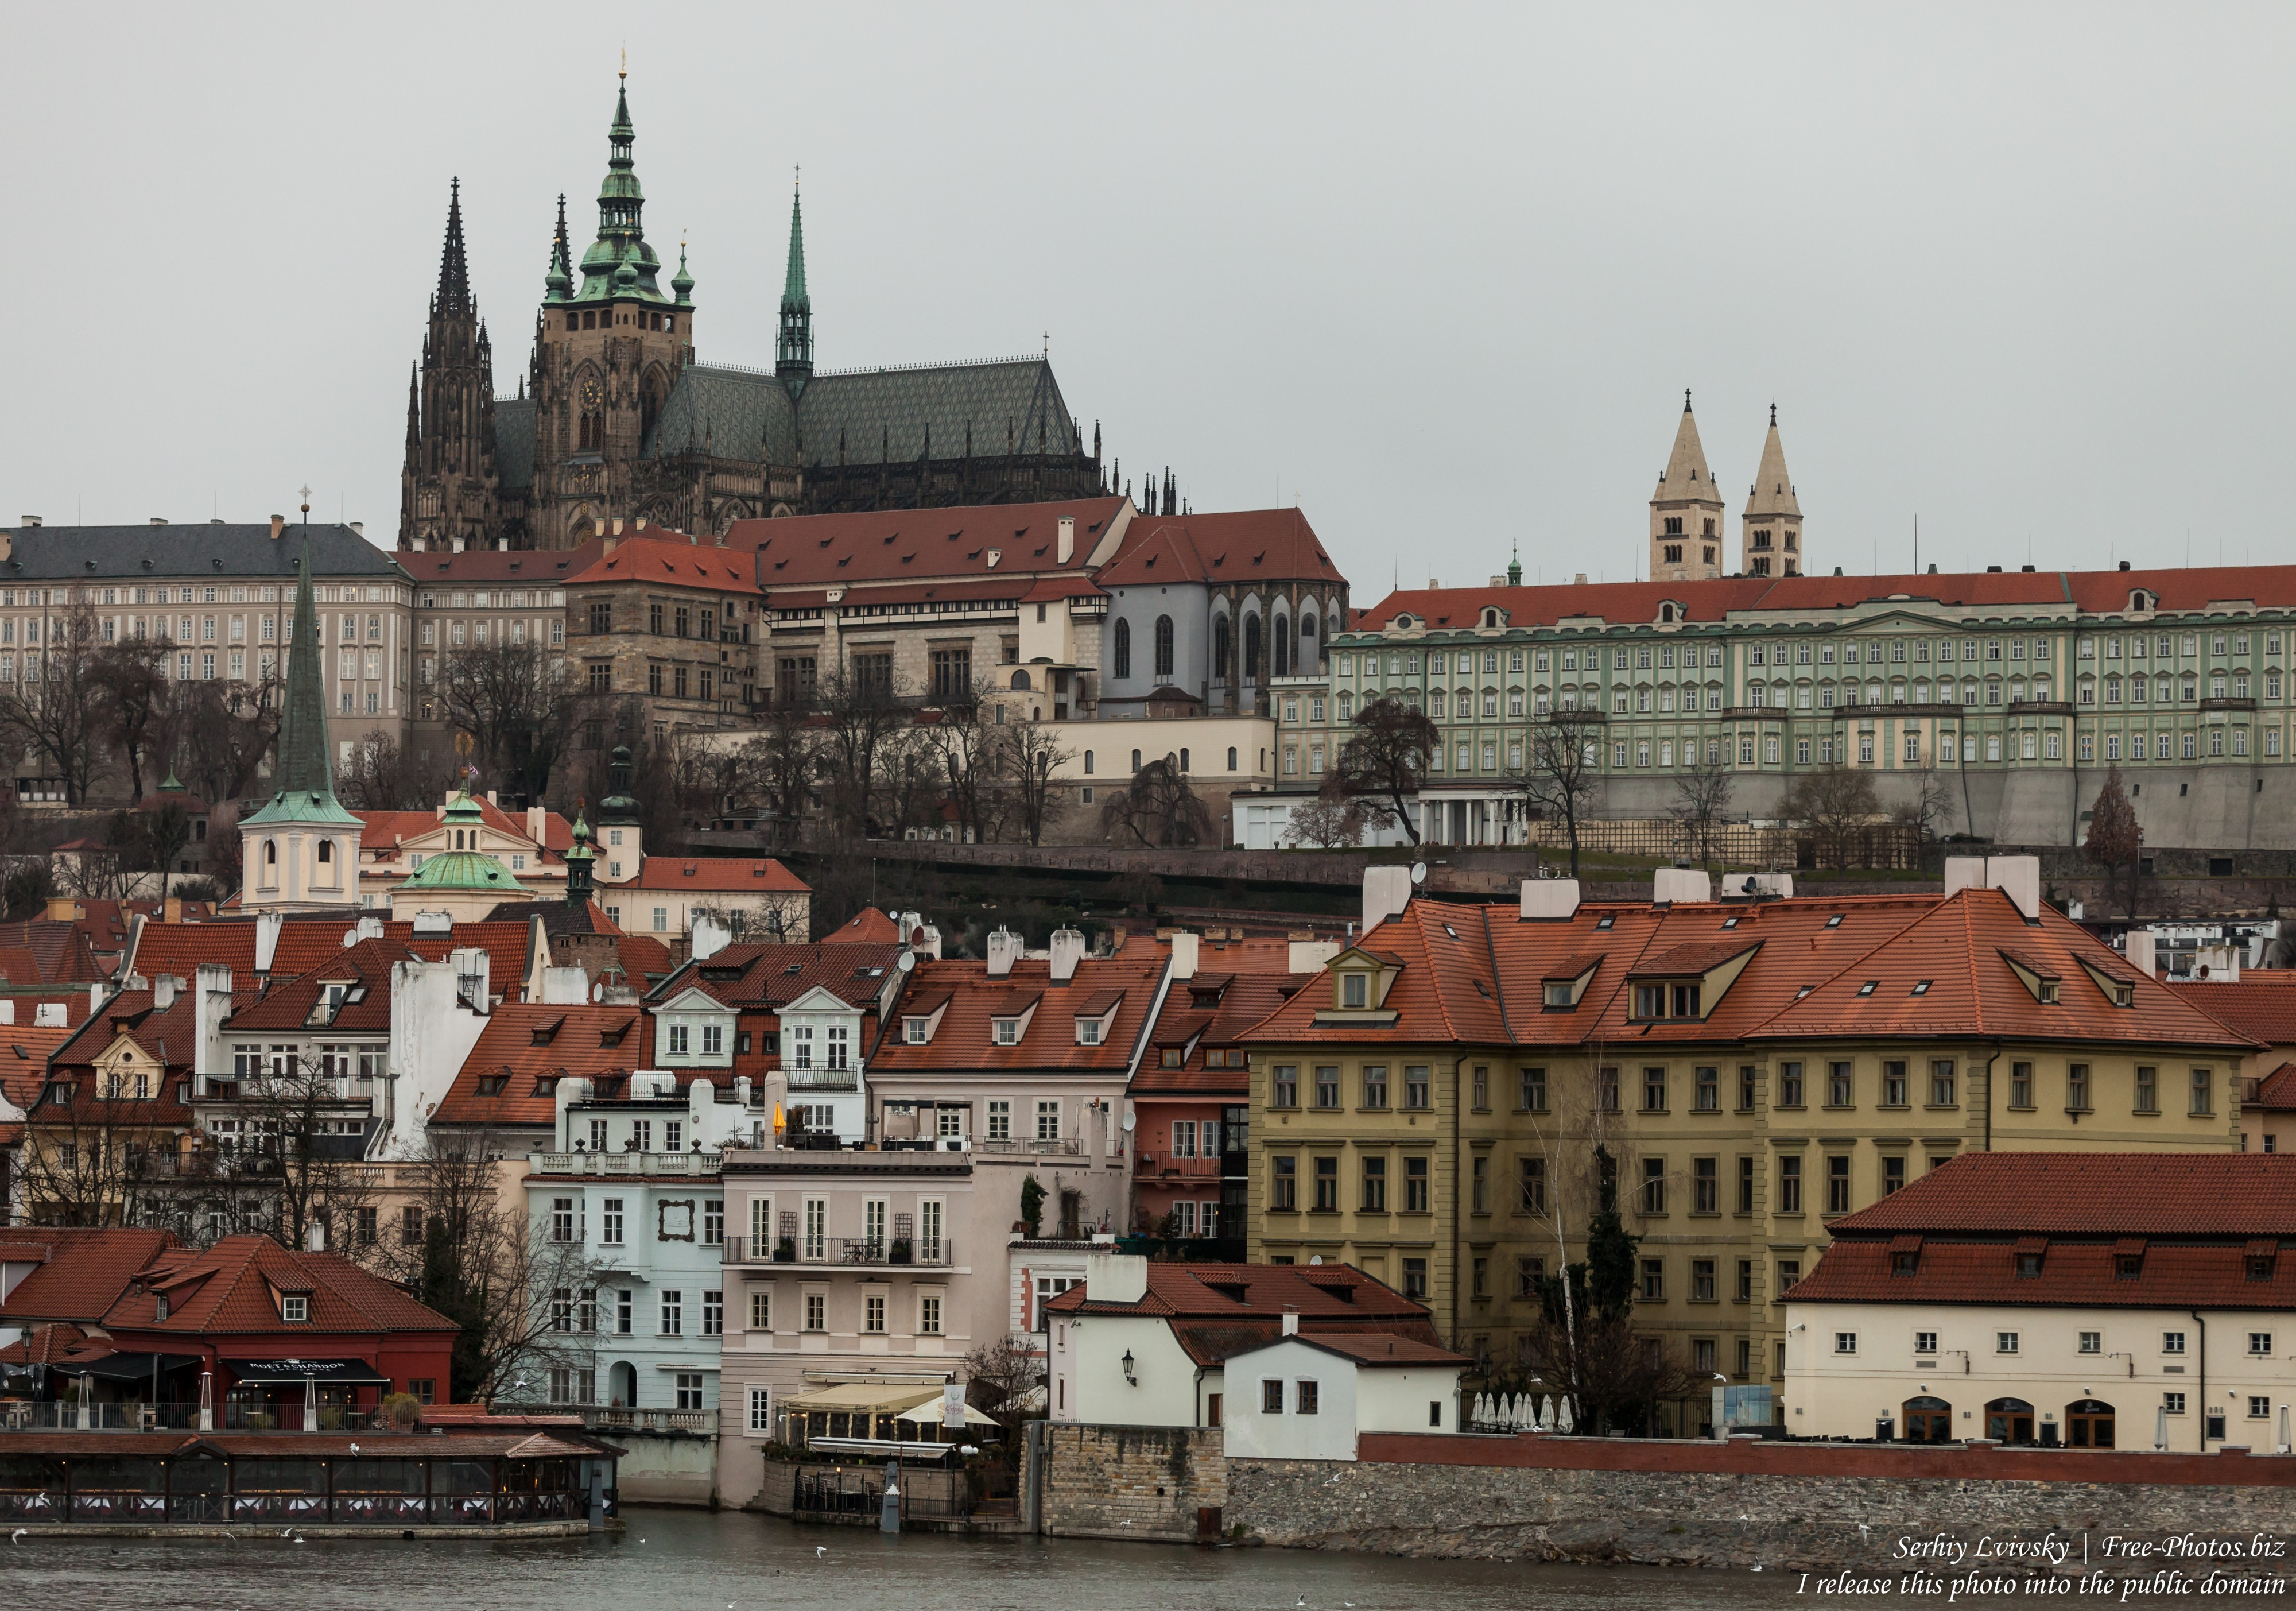 Prague, Czech Republic, in January 2018, photographed by Serhiy Lvivsky, picture 11